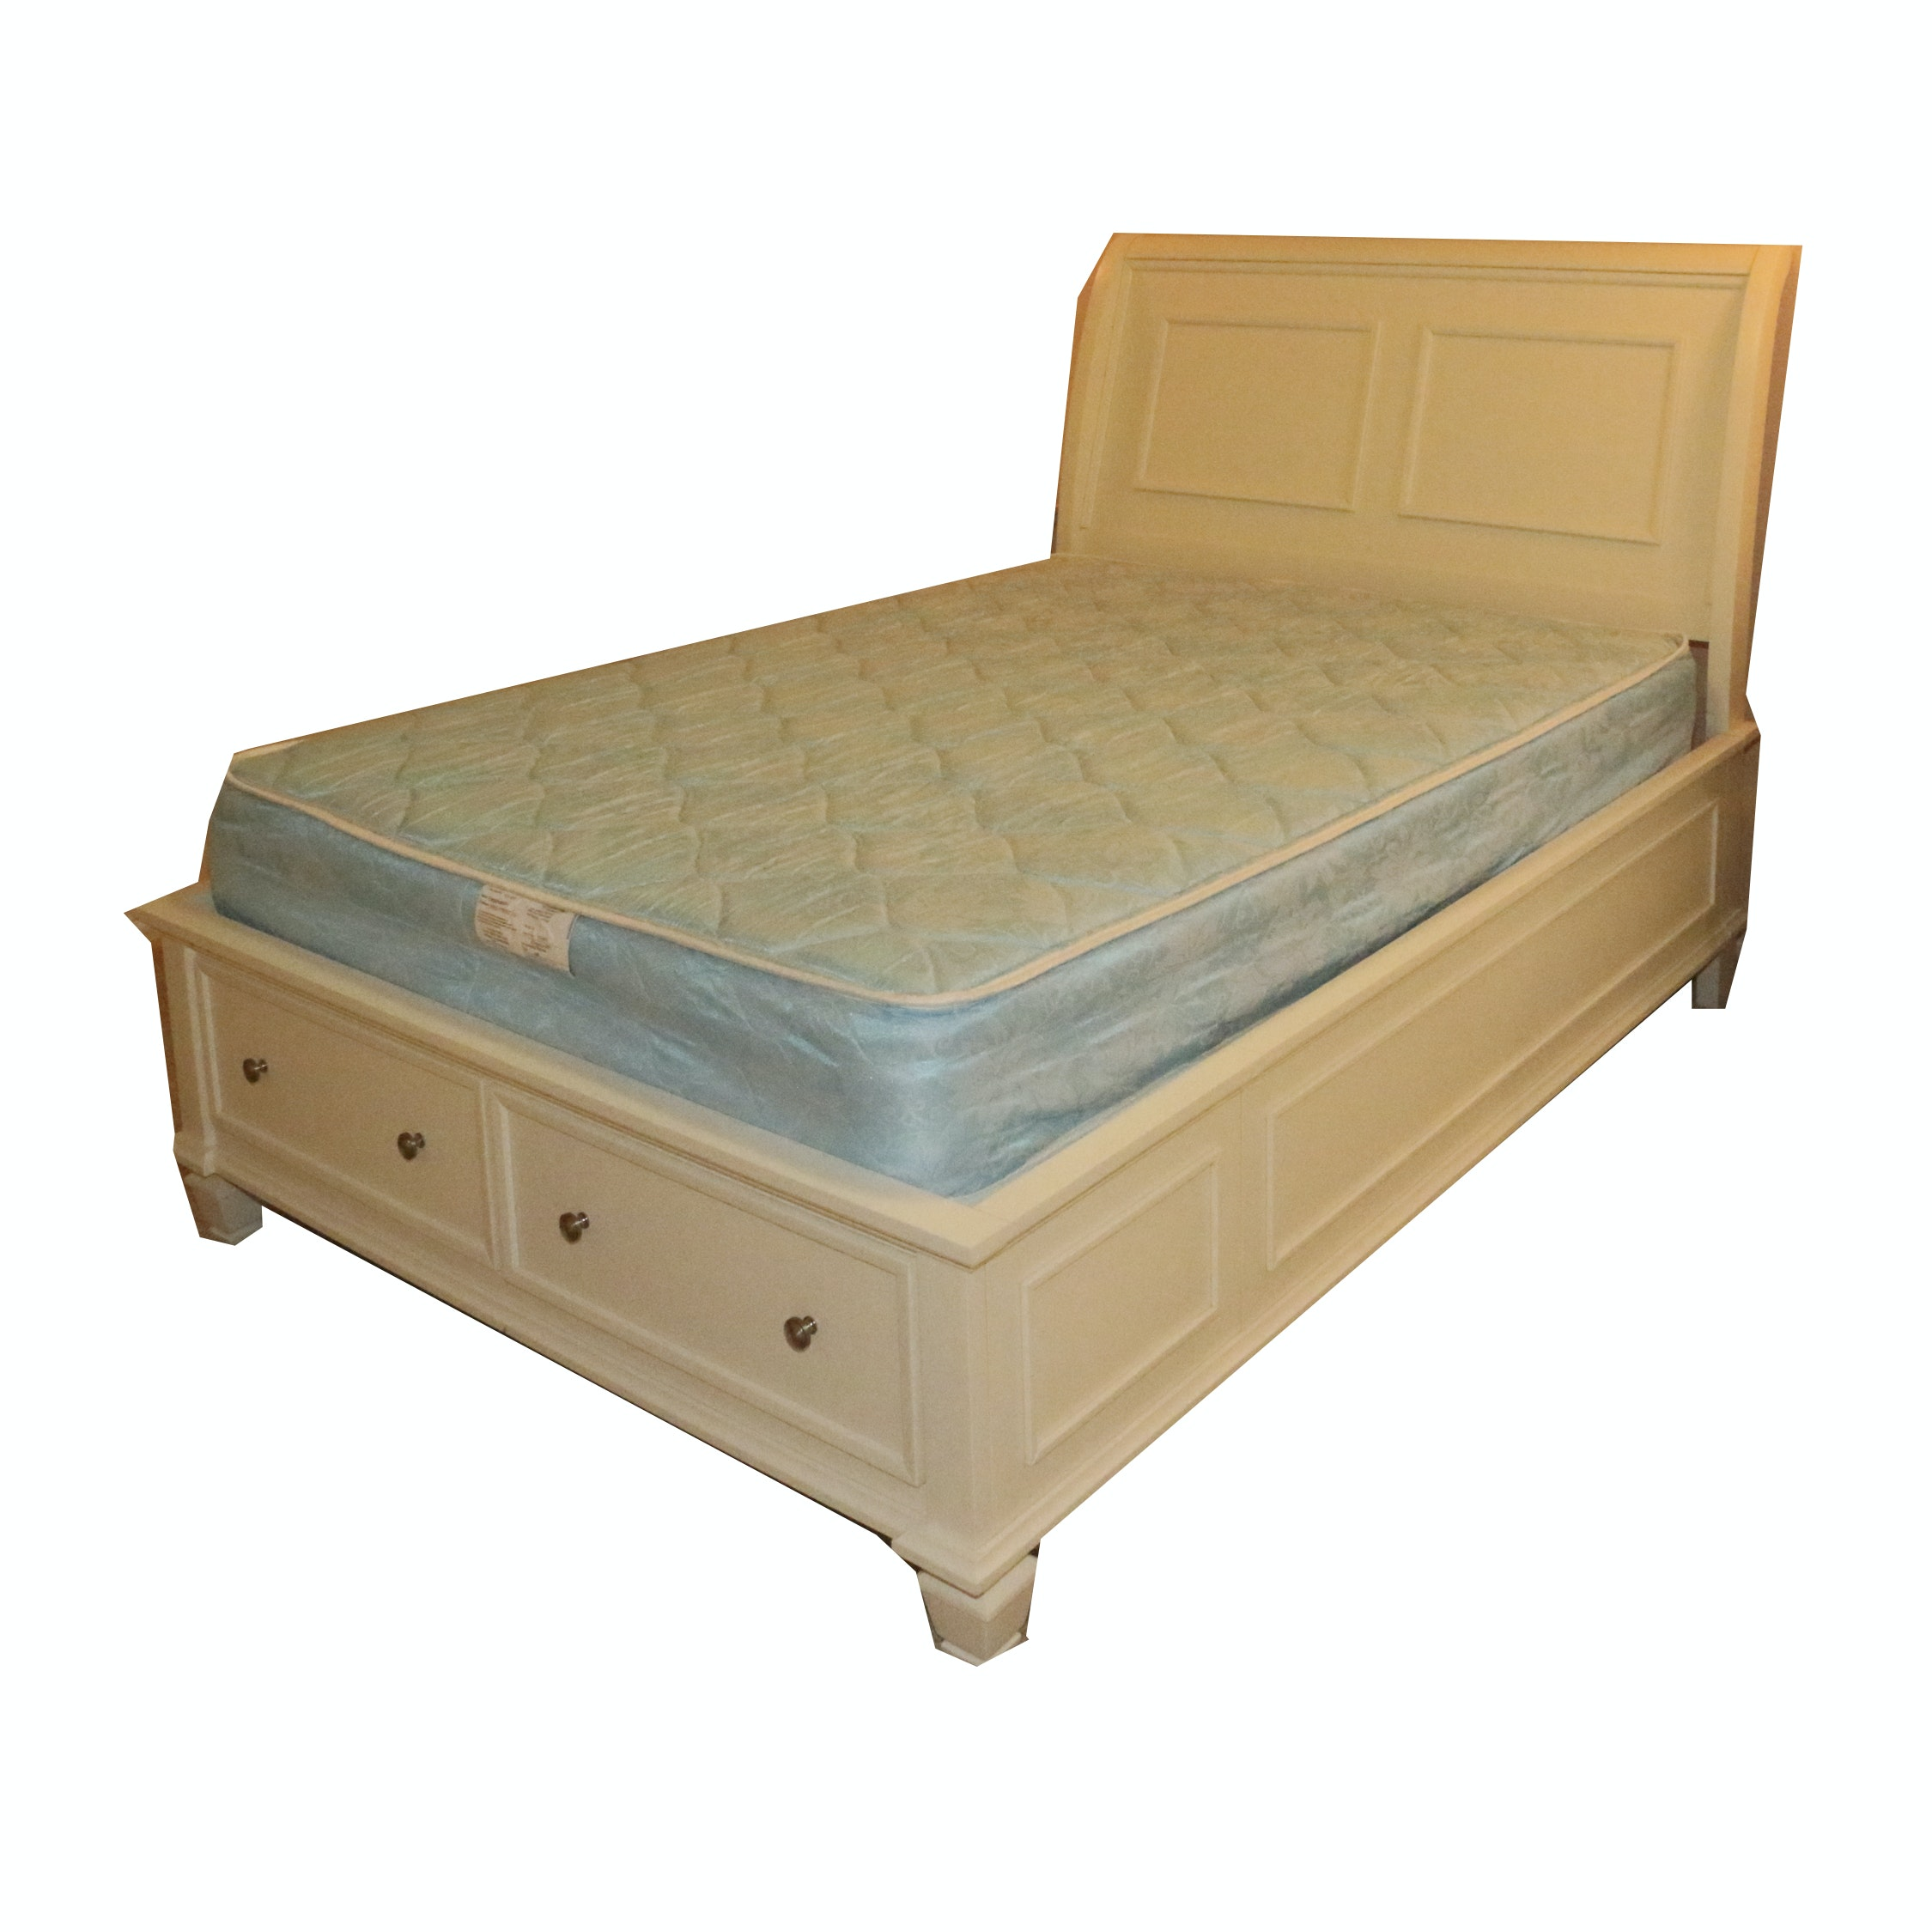 White Laminate Full Size Bed Frame with Storage, 21st Century